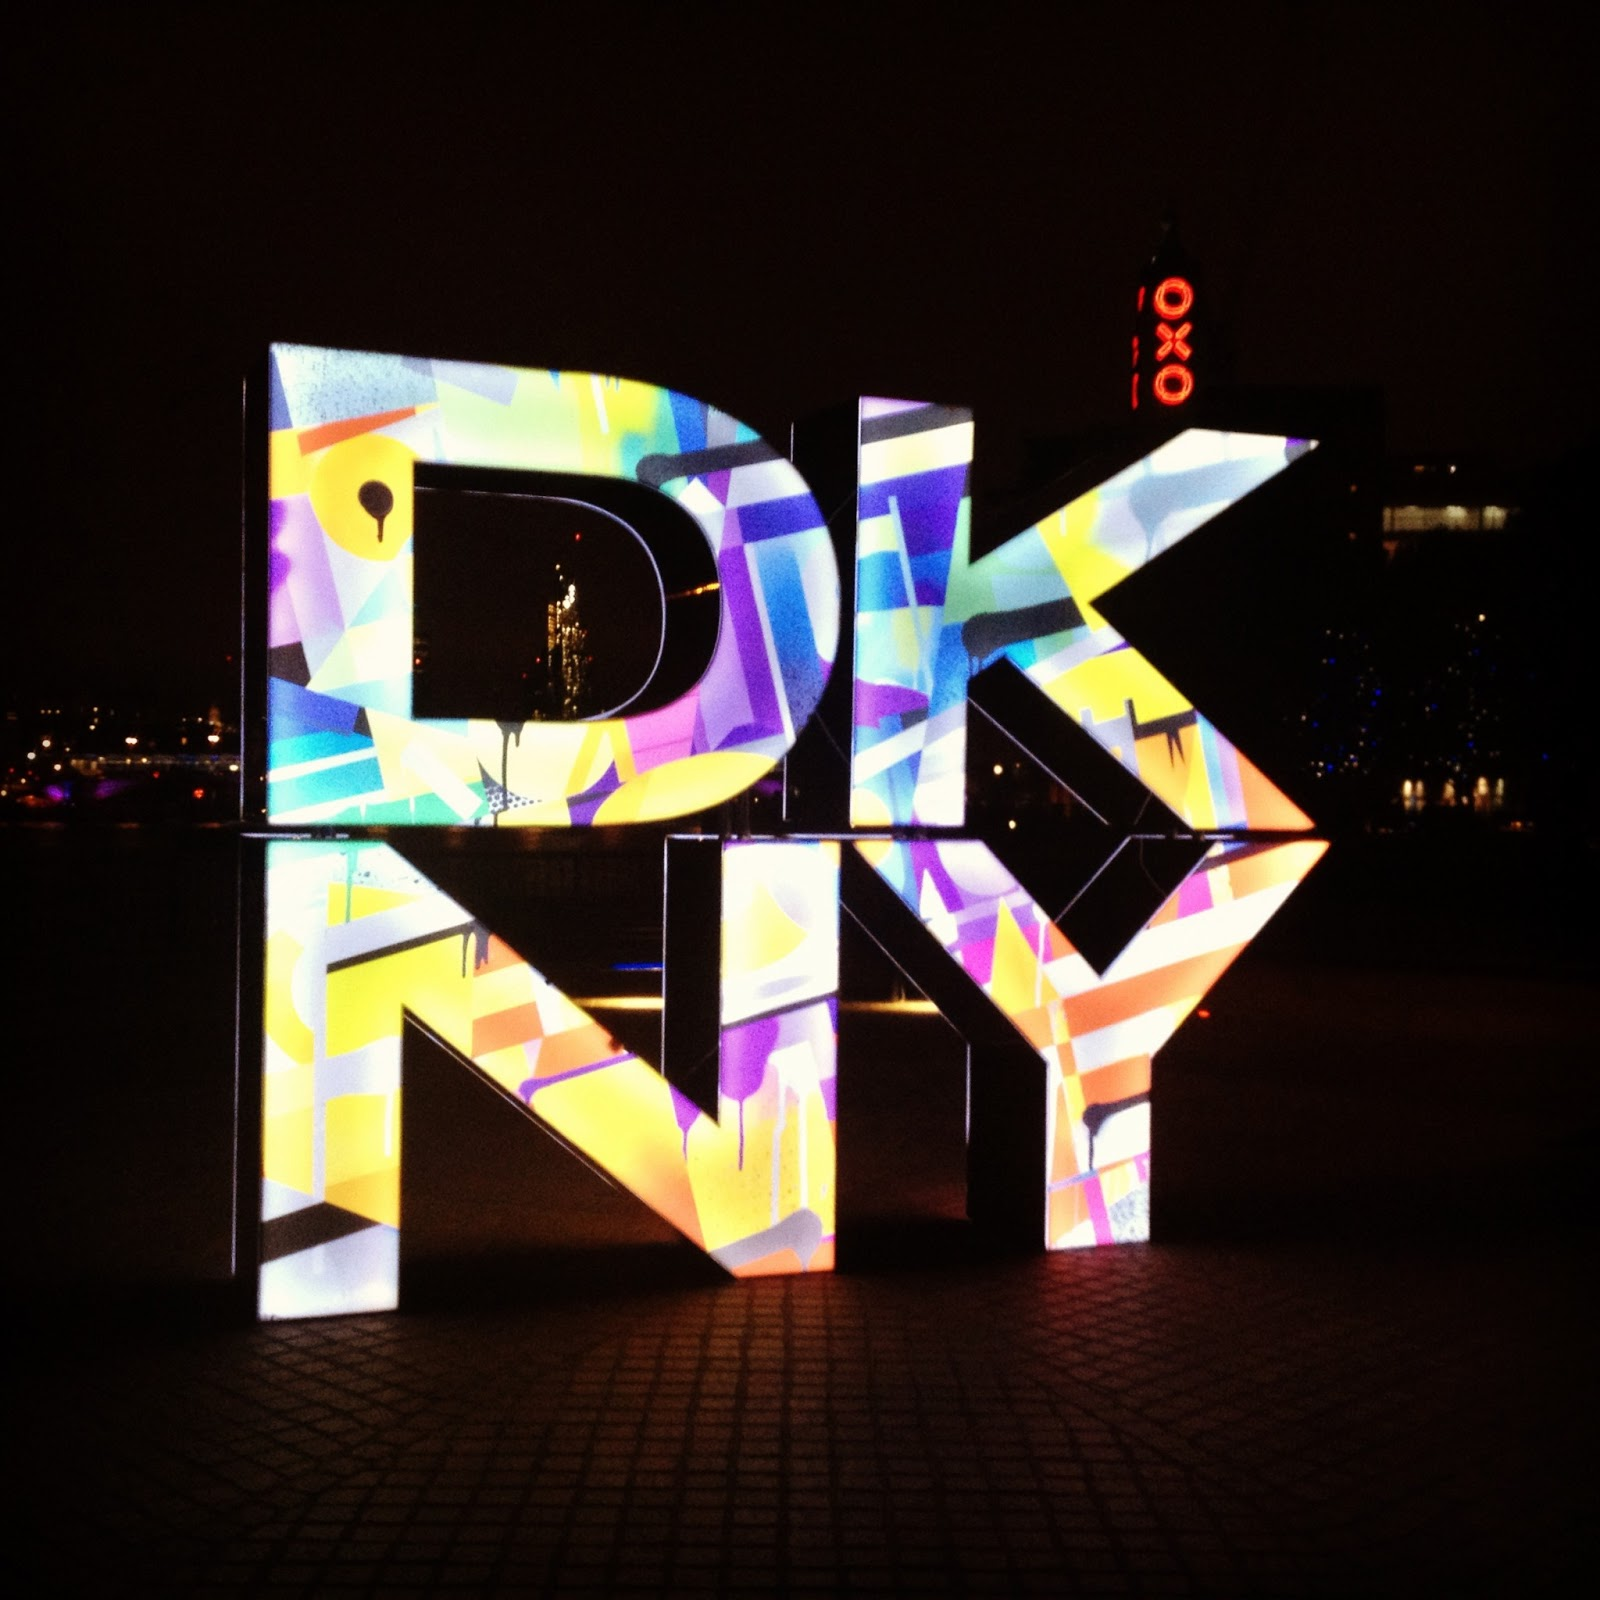 ... the frame of the DKNY logo